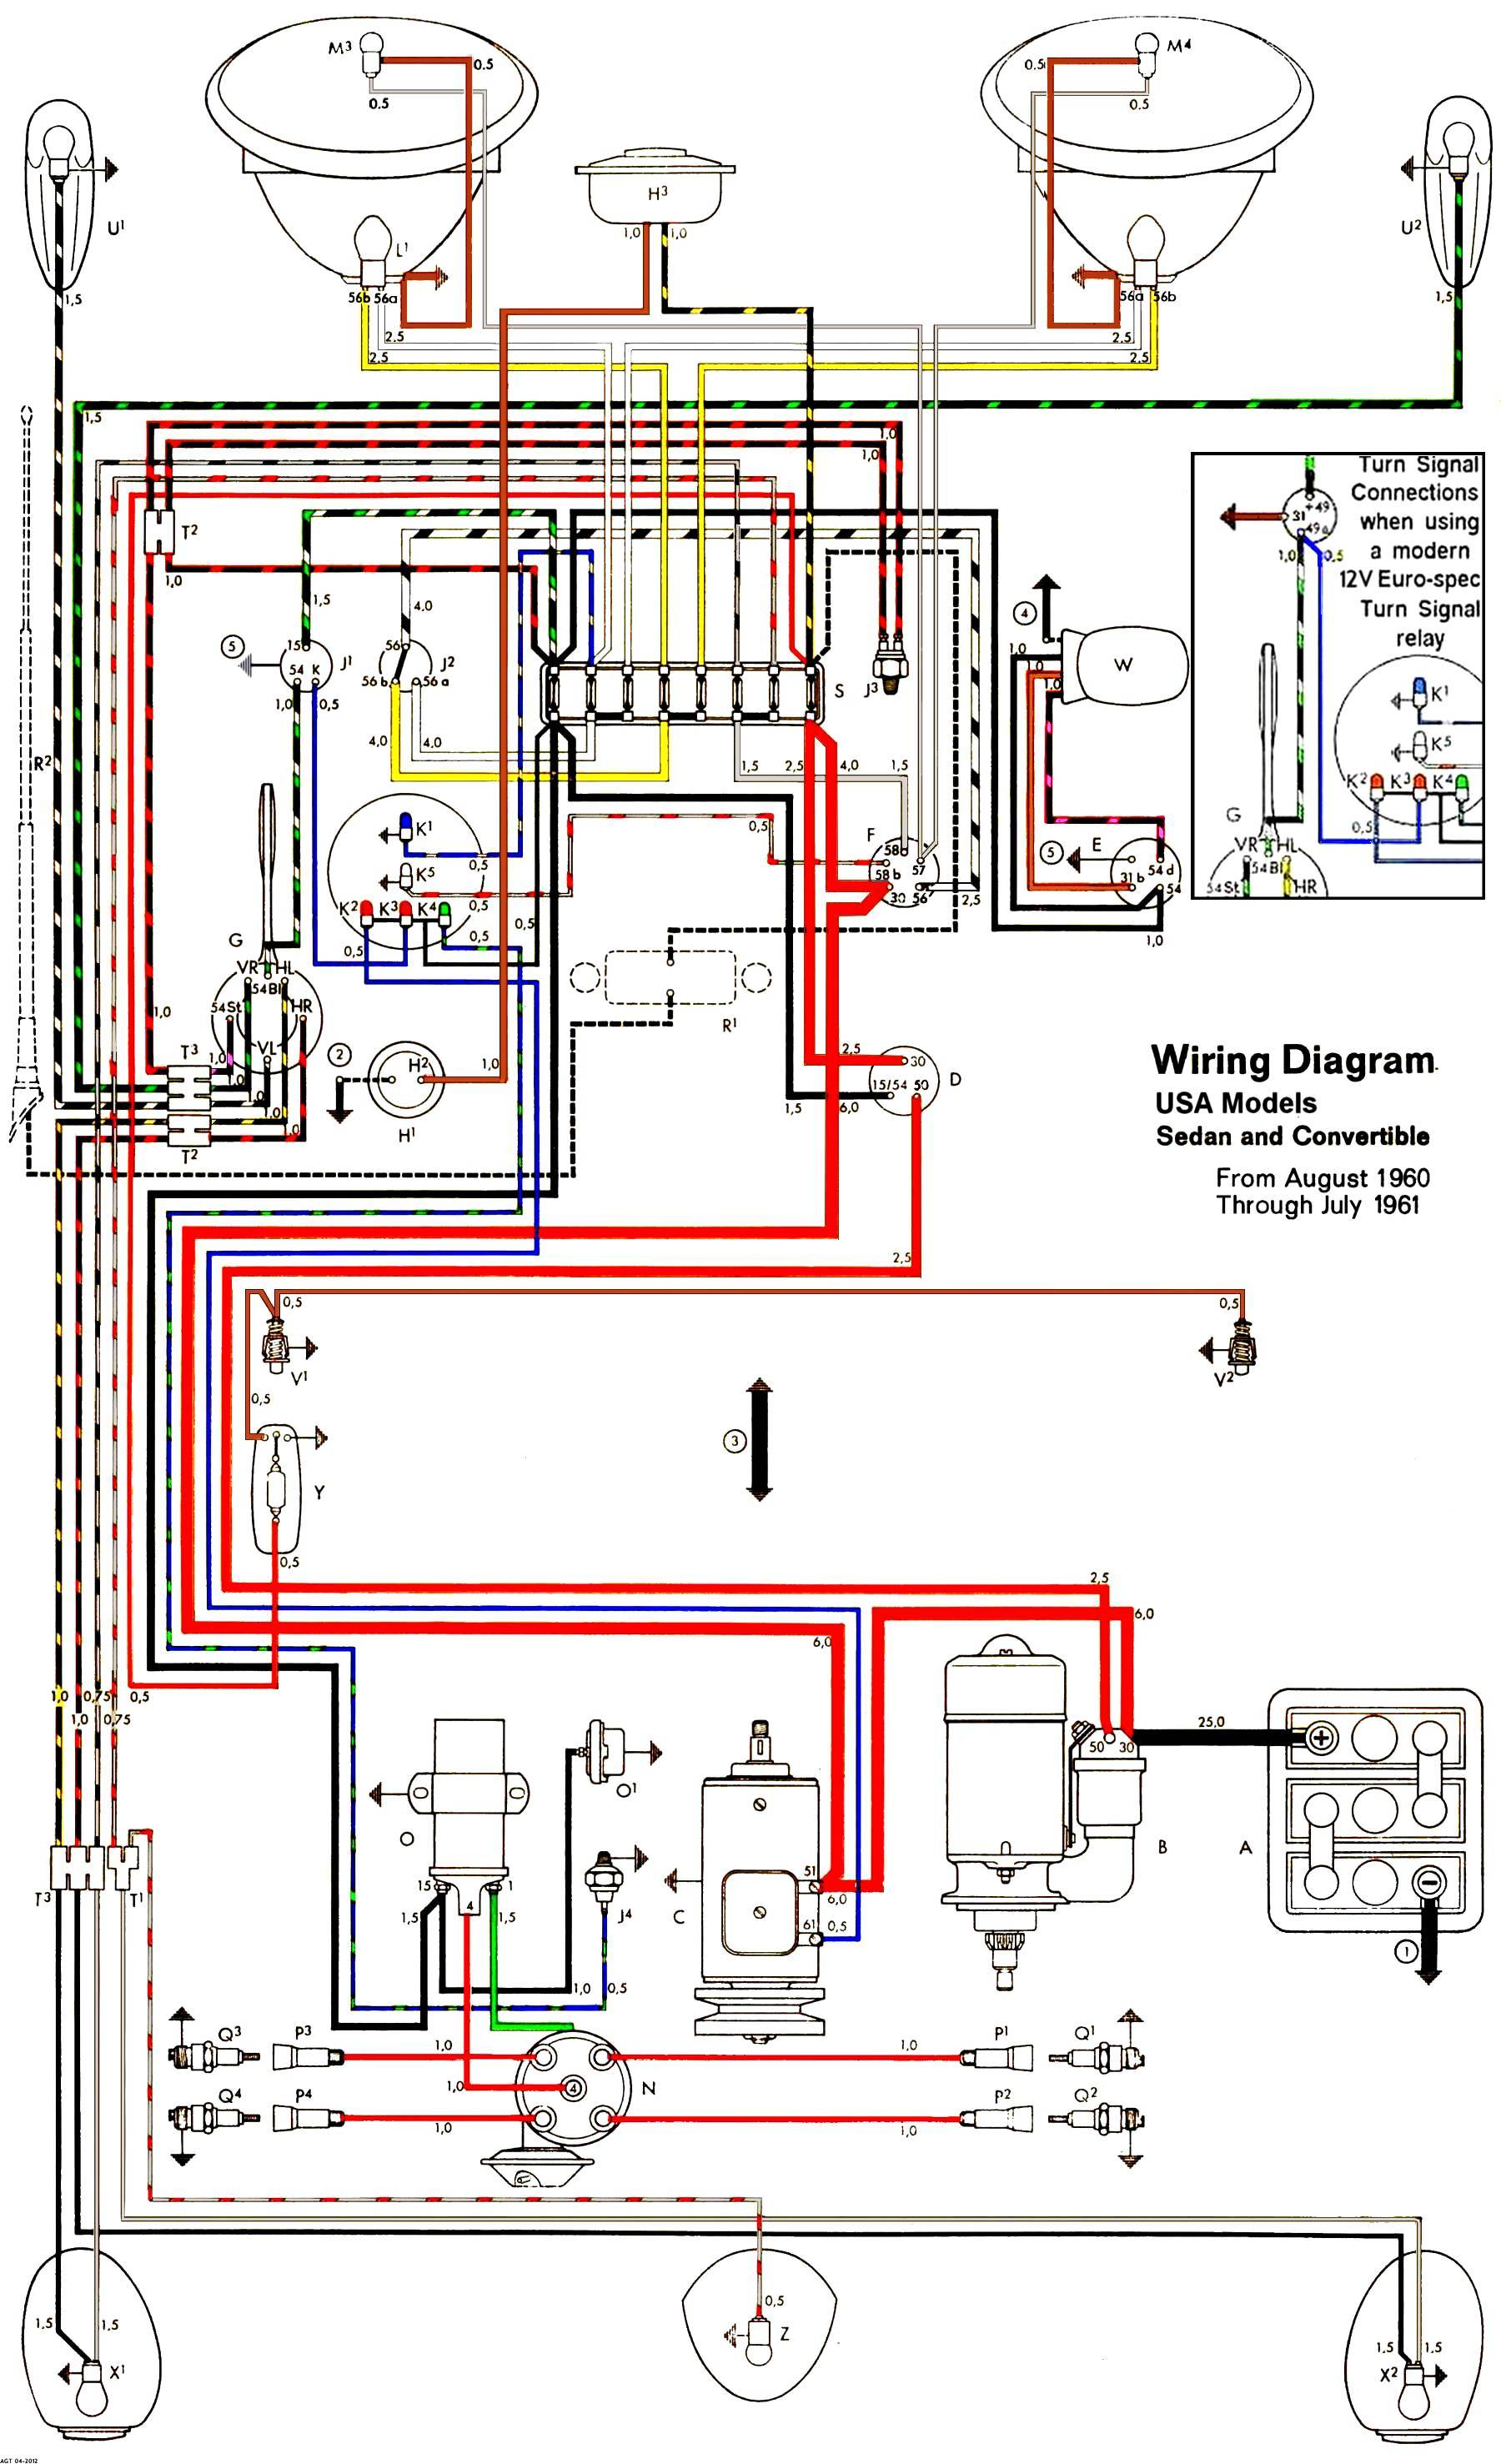 thesamba com type 1 wiring diagrams rh thesamba com 1970 vw beetle wire diagram 1970 vw transporter wiring diagram